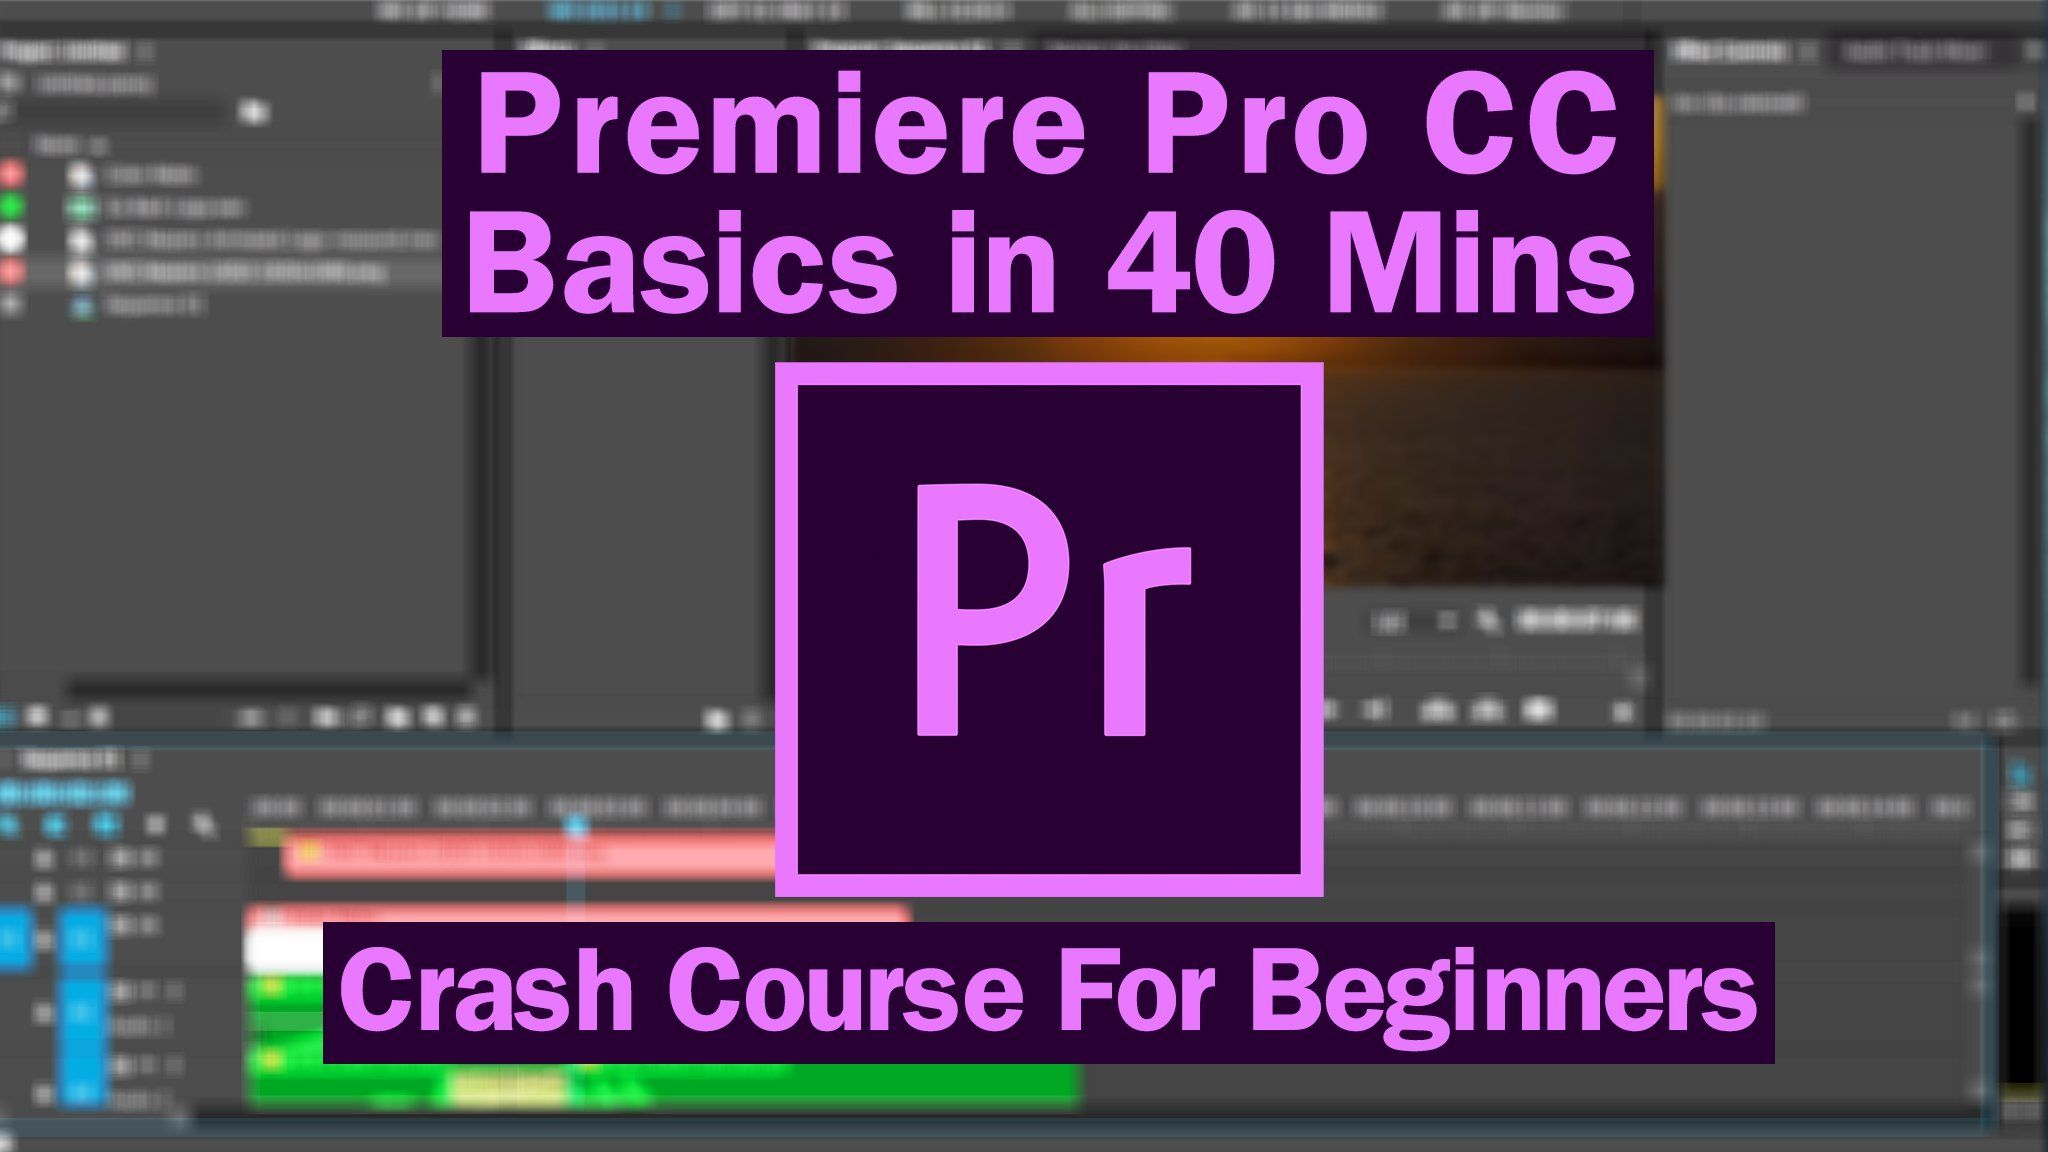 Premiere Pro CC Basics In 40 Mins Free For Beginners